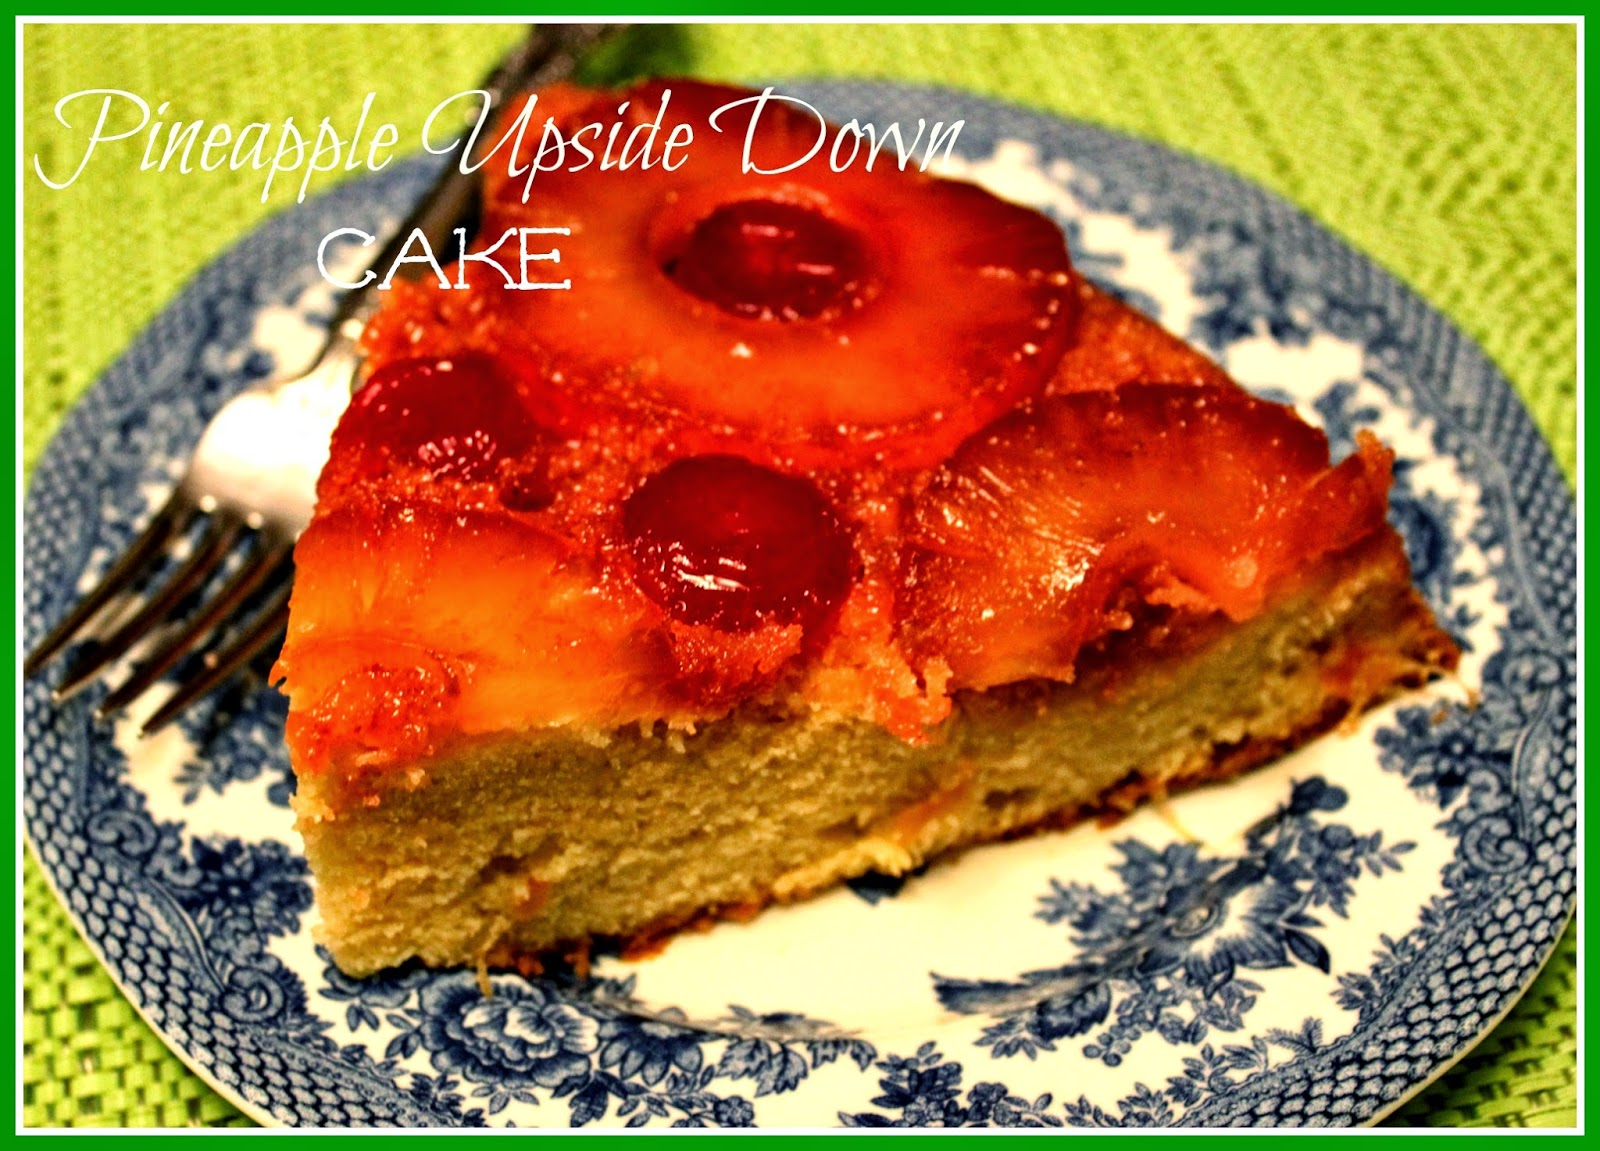 Sweet Tea and Cornbread: Iron Skillet Pineapple Upside Down Cake!